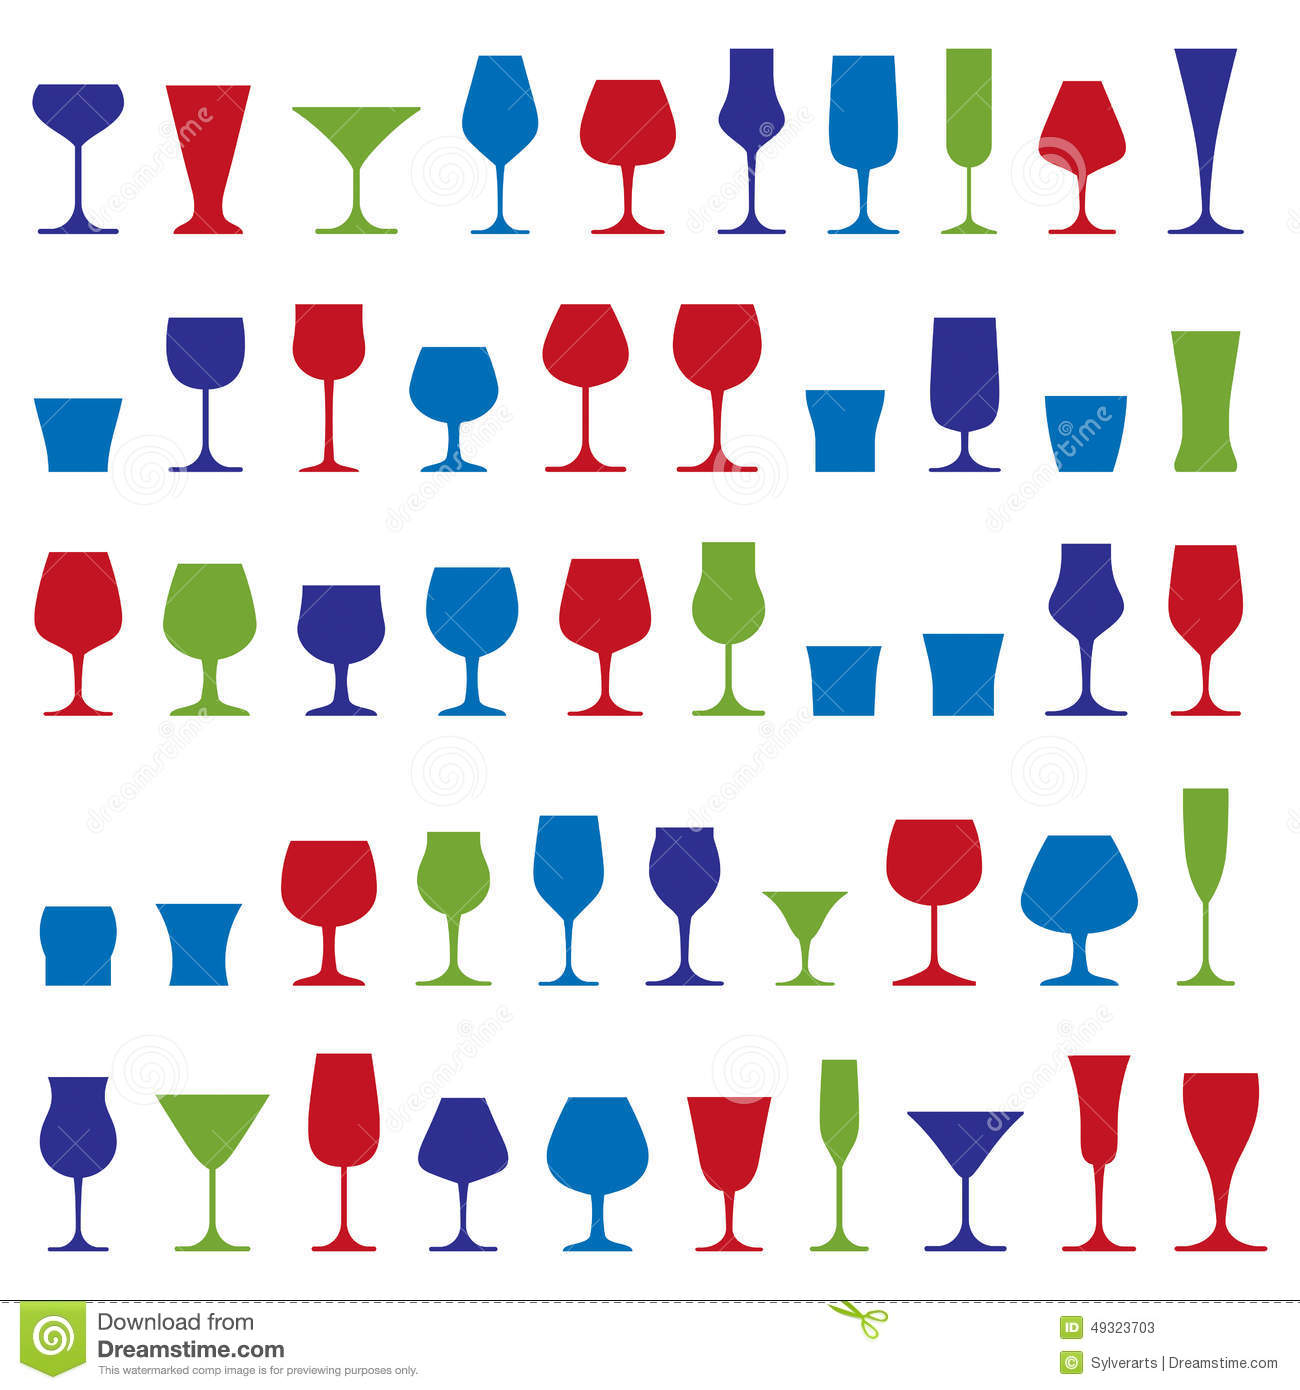 Decorative Drinking Glasses Collection. Set Of Celebration Goble.